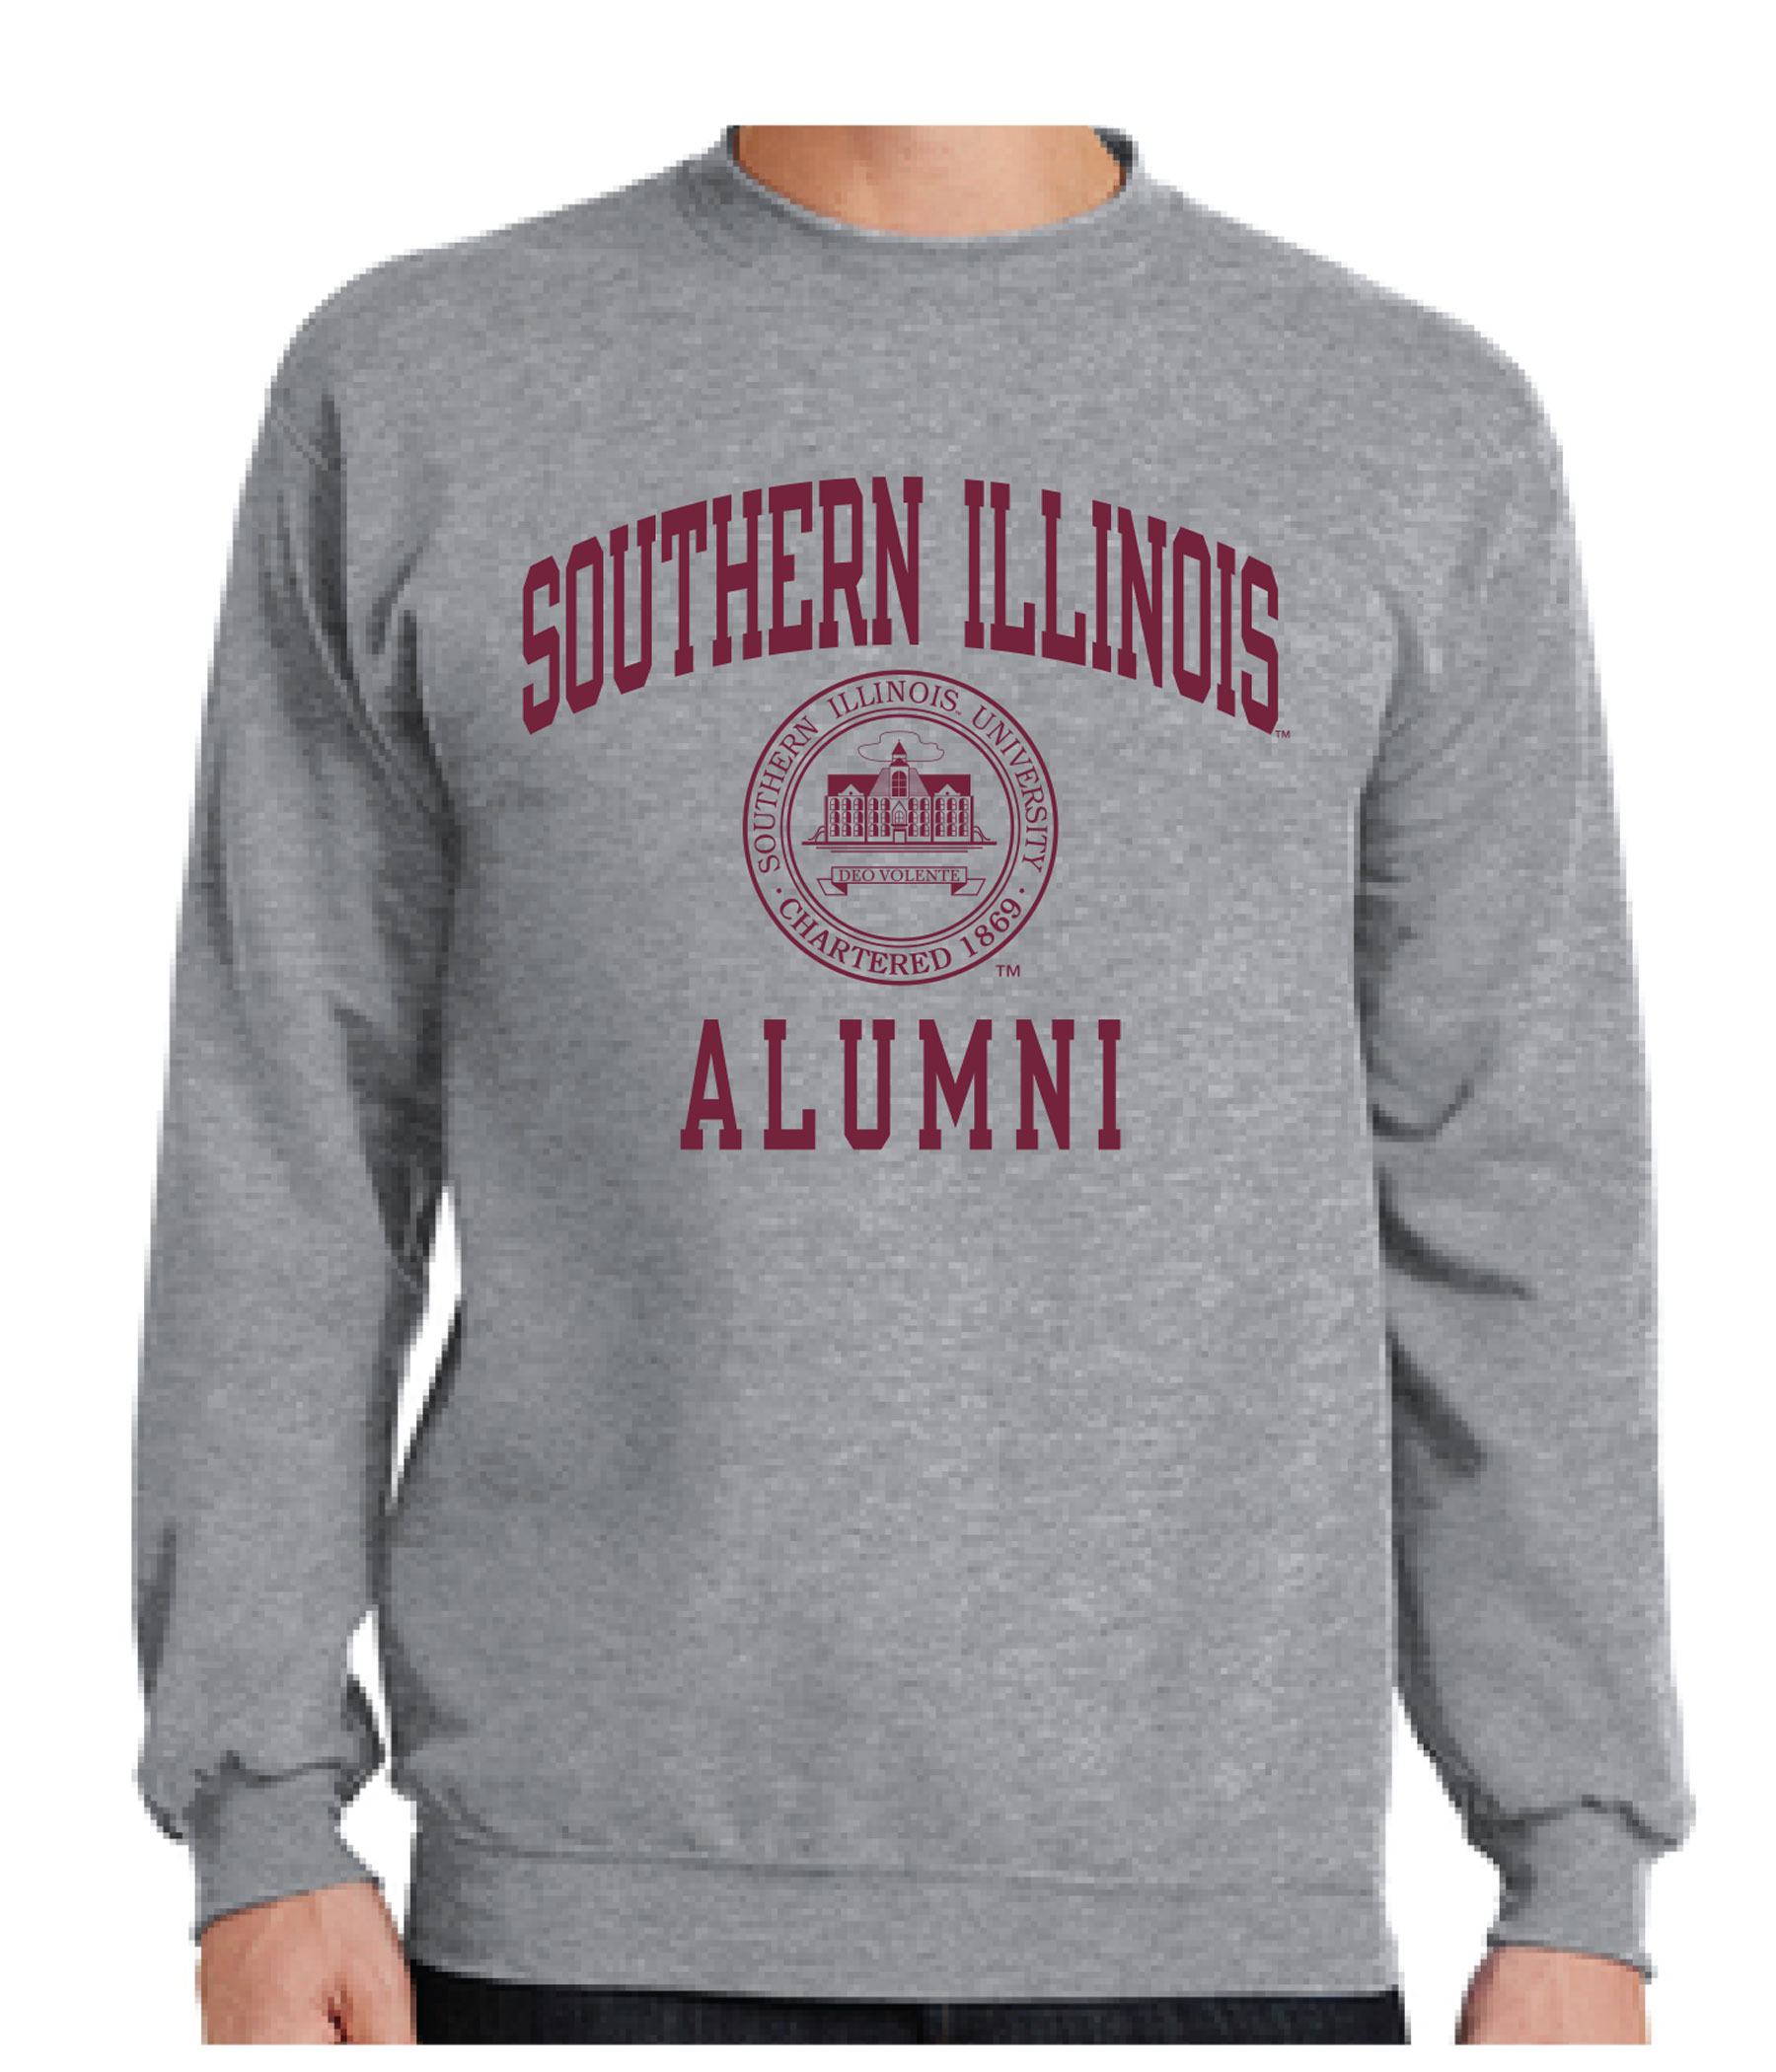 Image for the PROMO® GREY SOUTHERN ILLINOIS ALUMNI SEAL CREW product